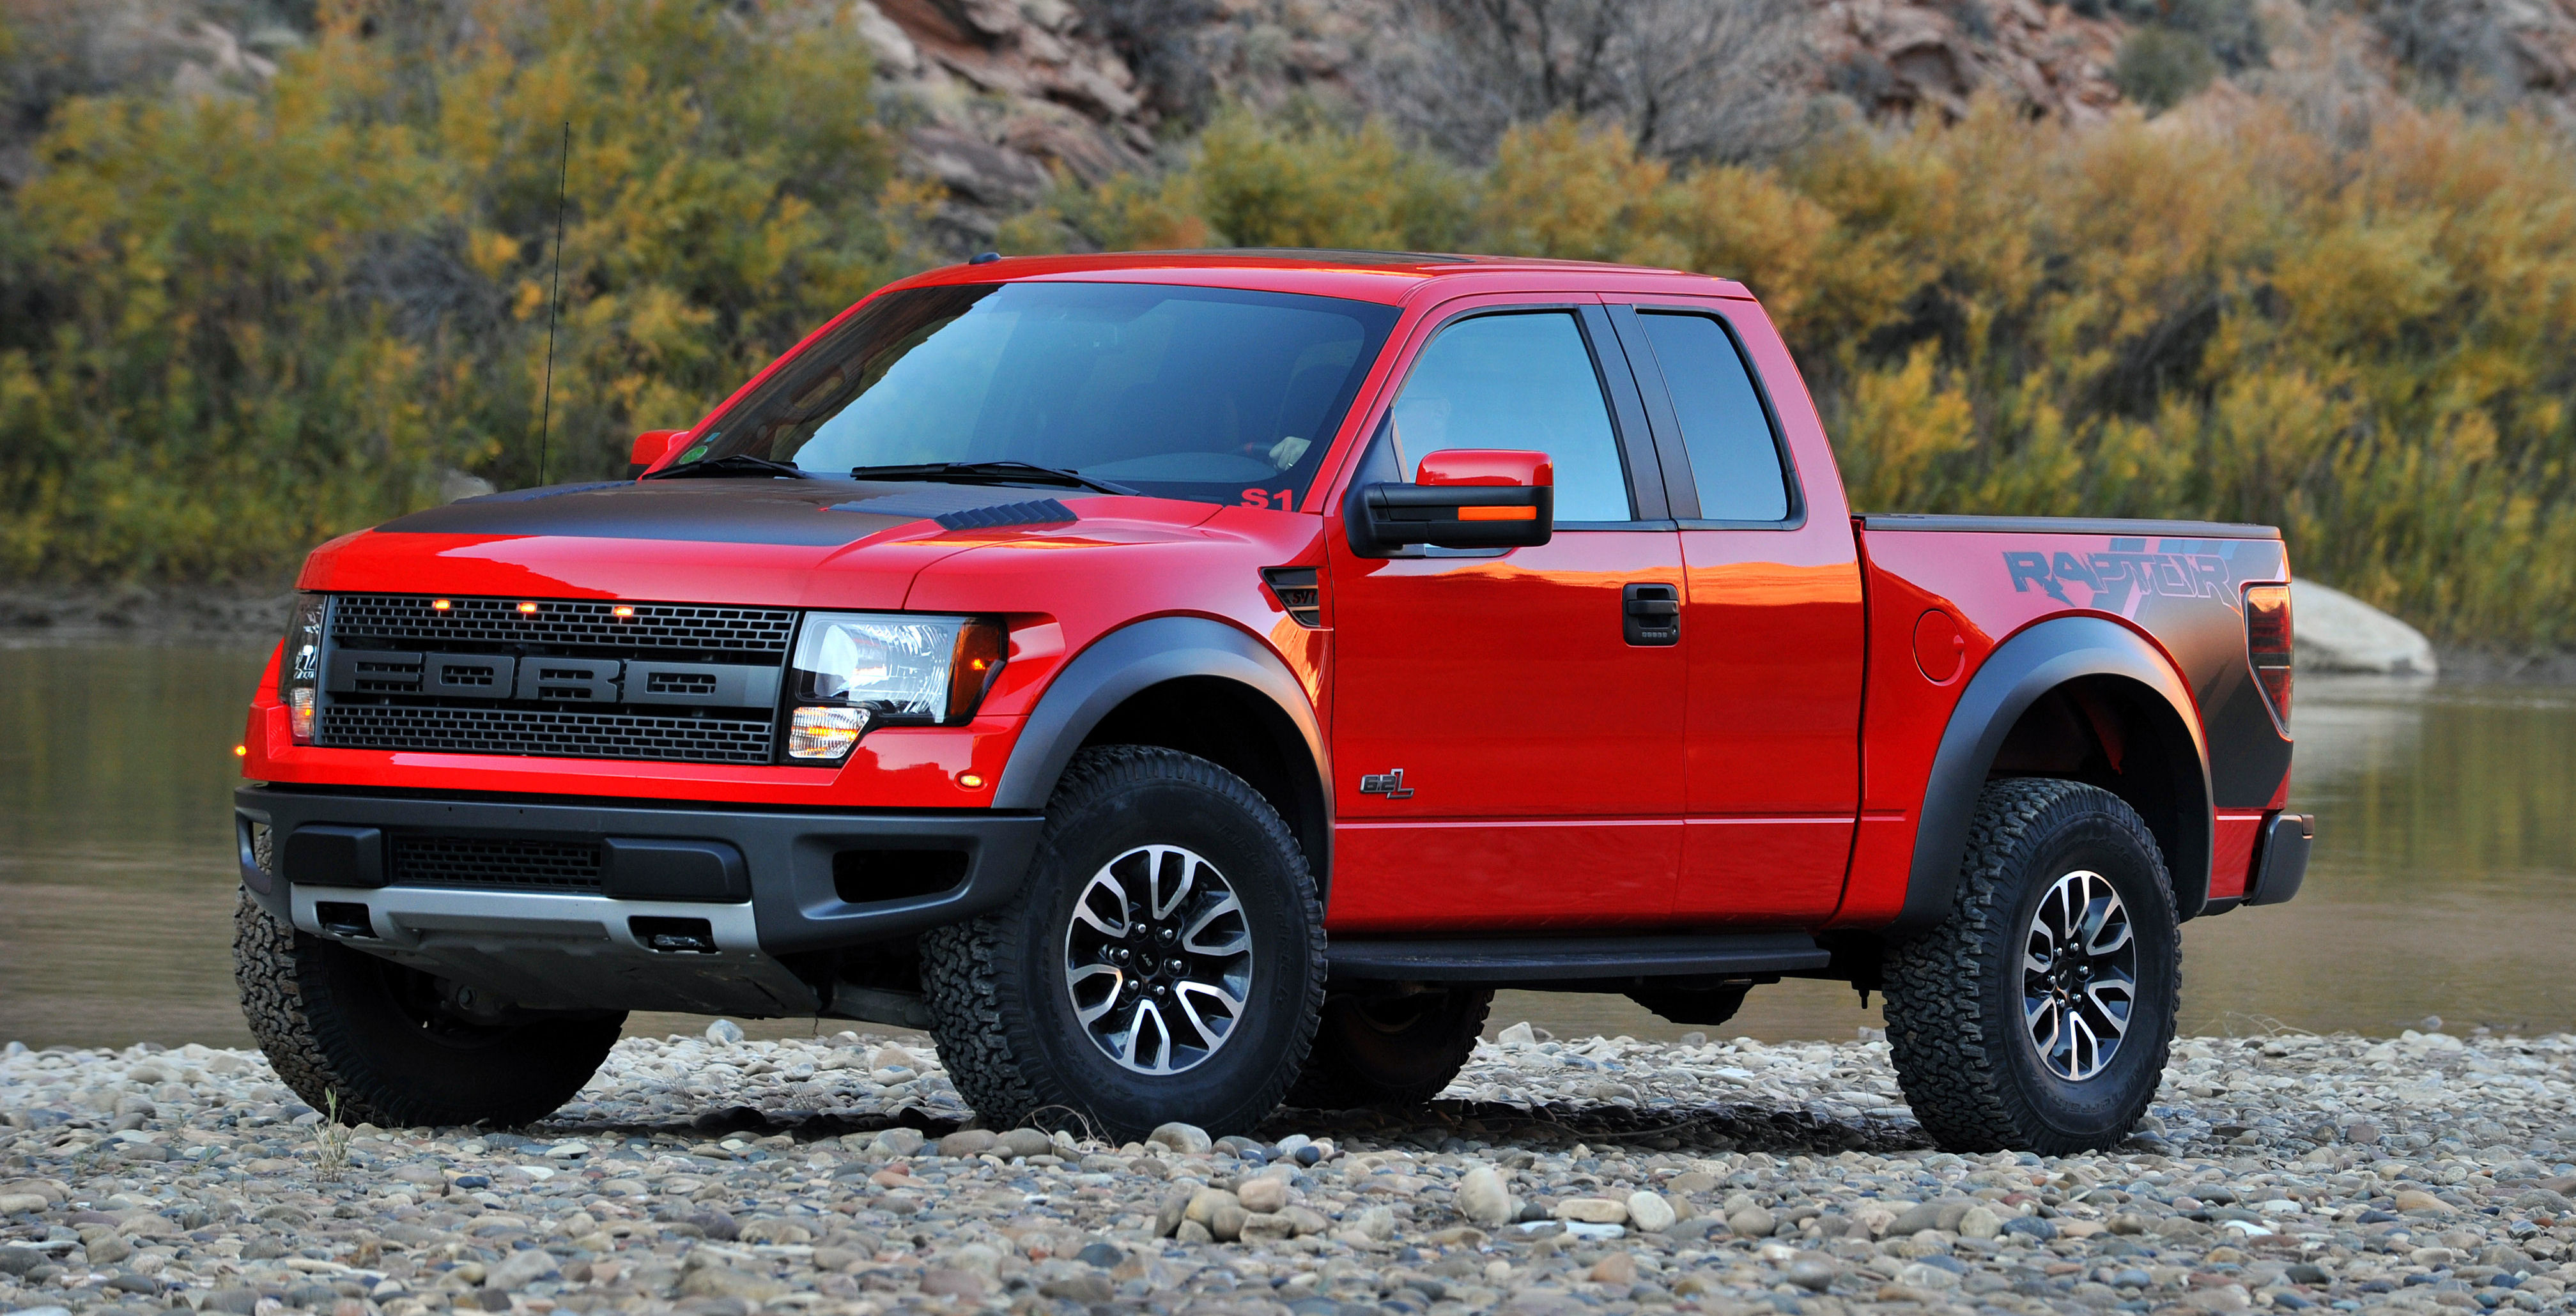 Ford raptor full hd wallpaper and background image 4031x2060 vehicles ford raptor wallpaper voltagebd Choice Image